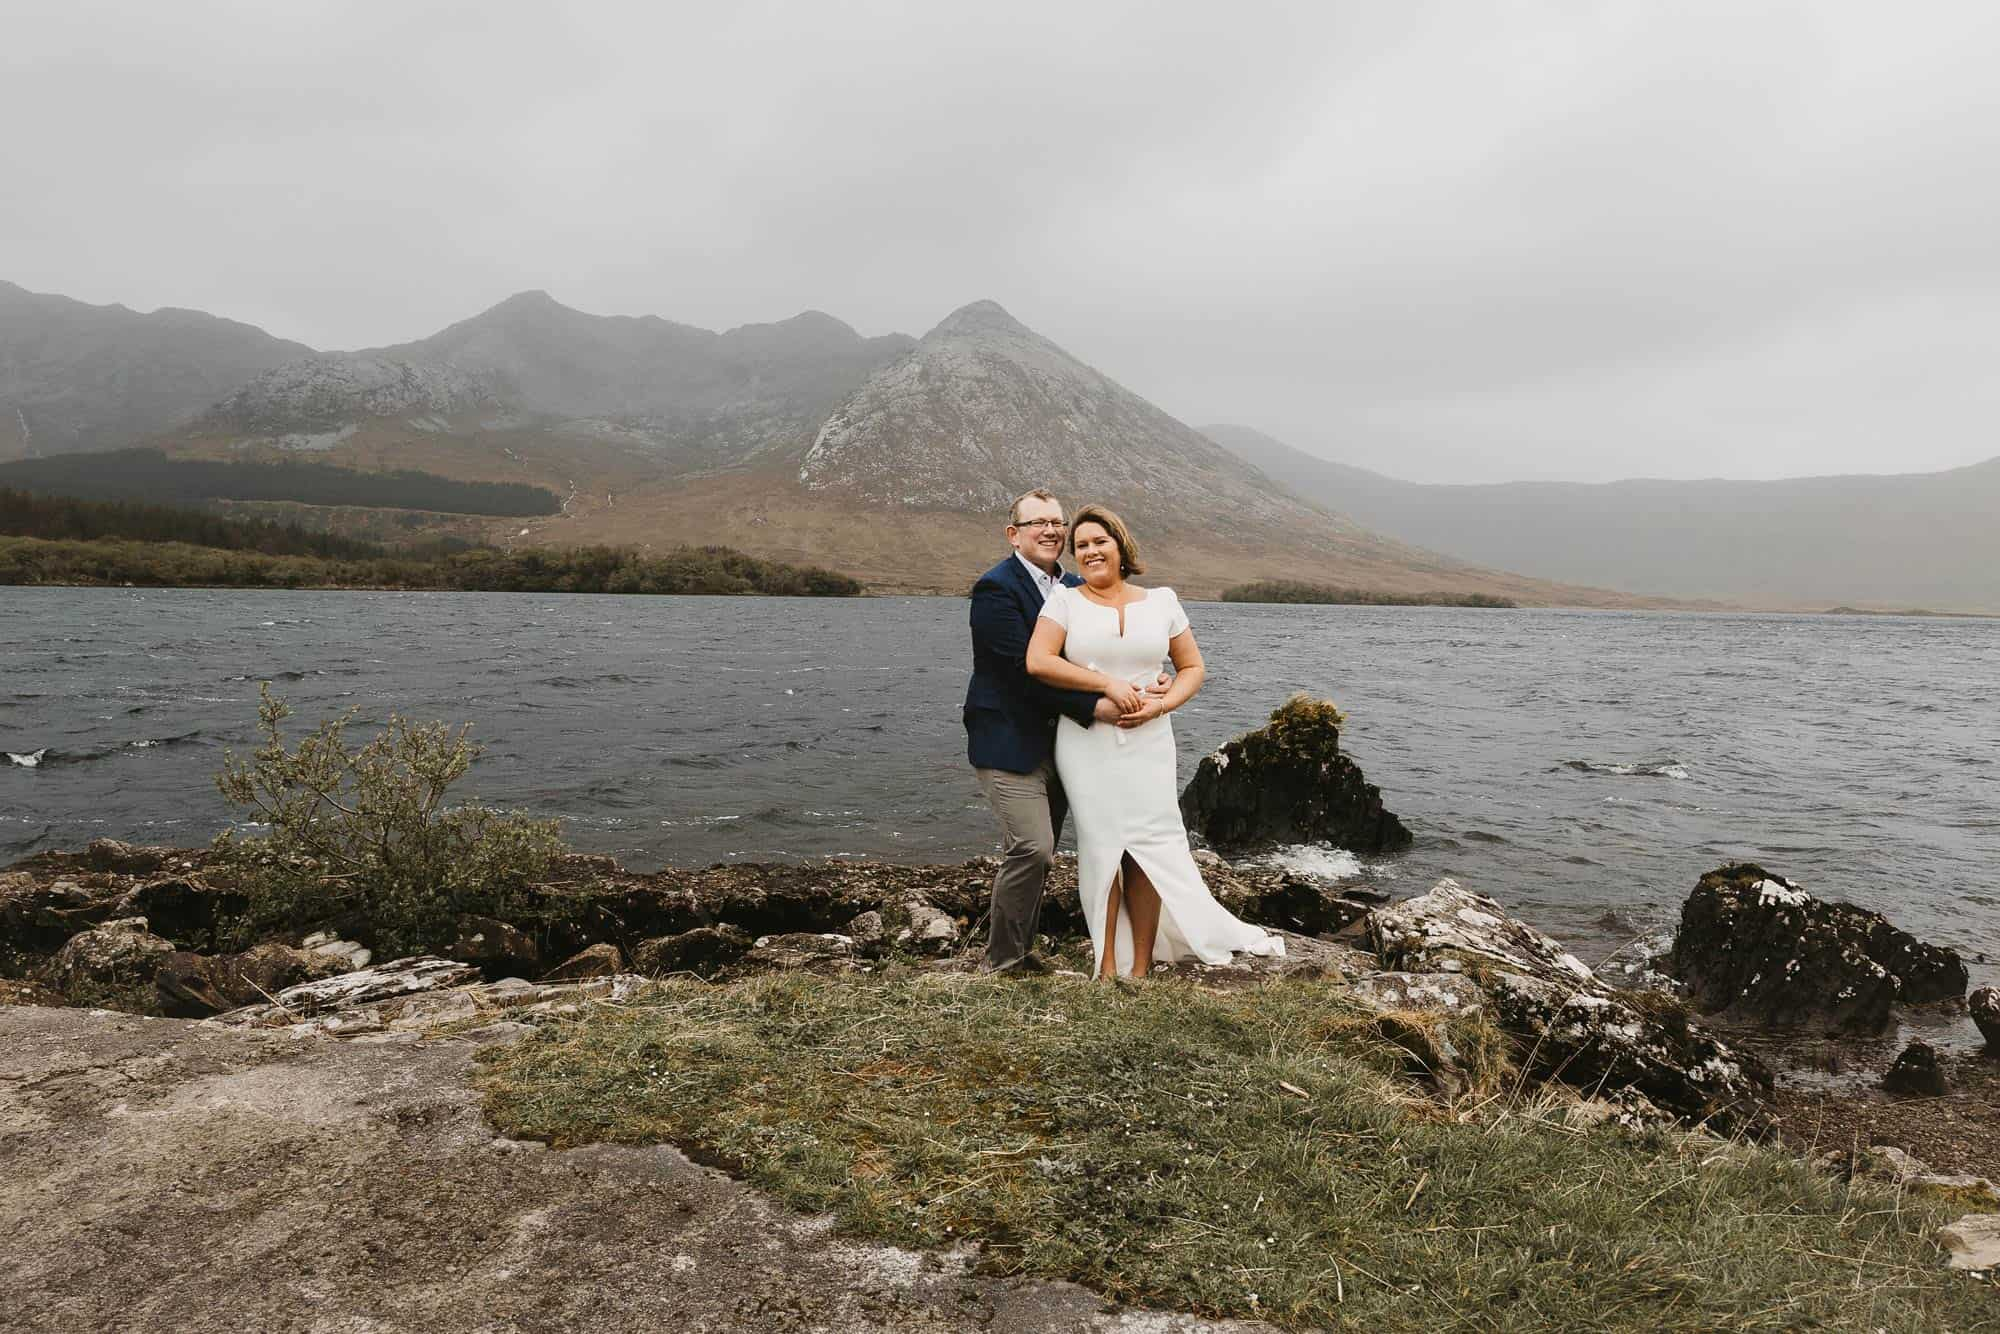 Planning for Elopements in Ireland The Happy Couple